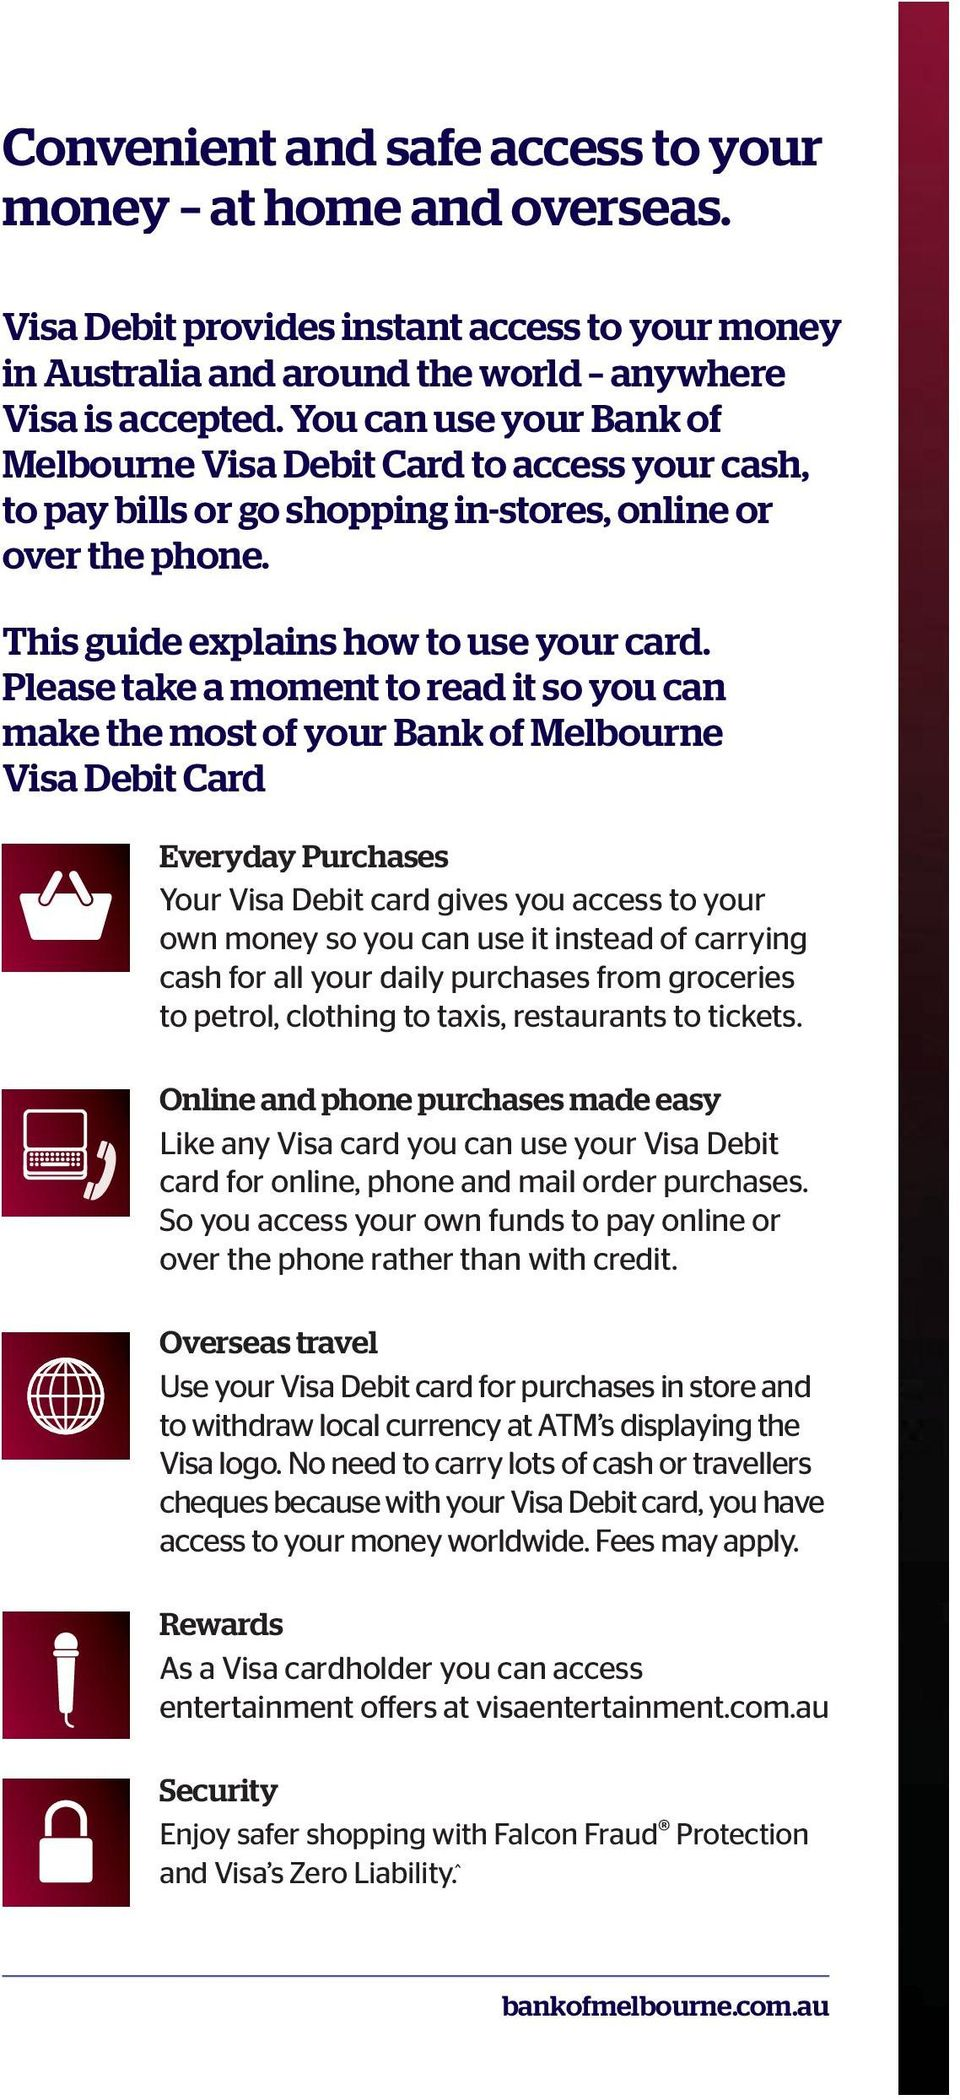 Please take a moment to read it so you can make the most of your Bank of Melbourne Visa Debit Card Everyday Purchases Your Visa Debit card gives you access to your own money so you can use it instead